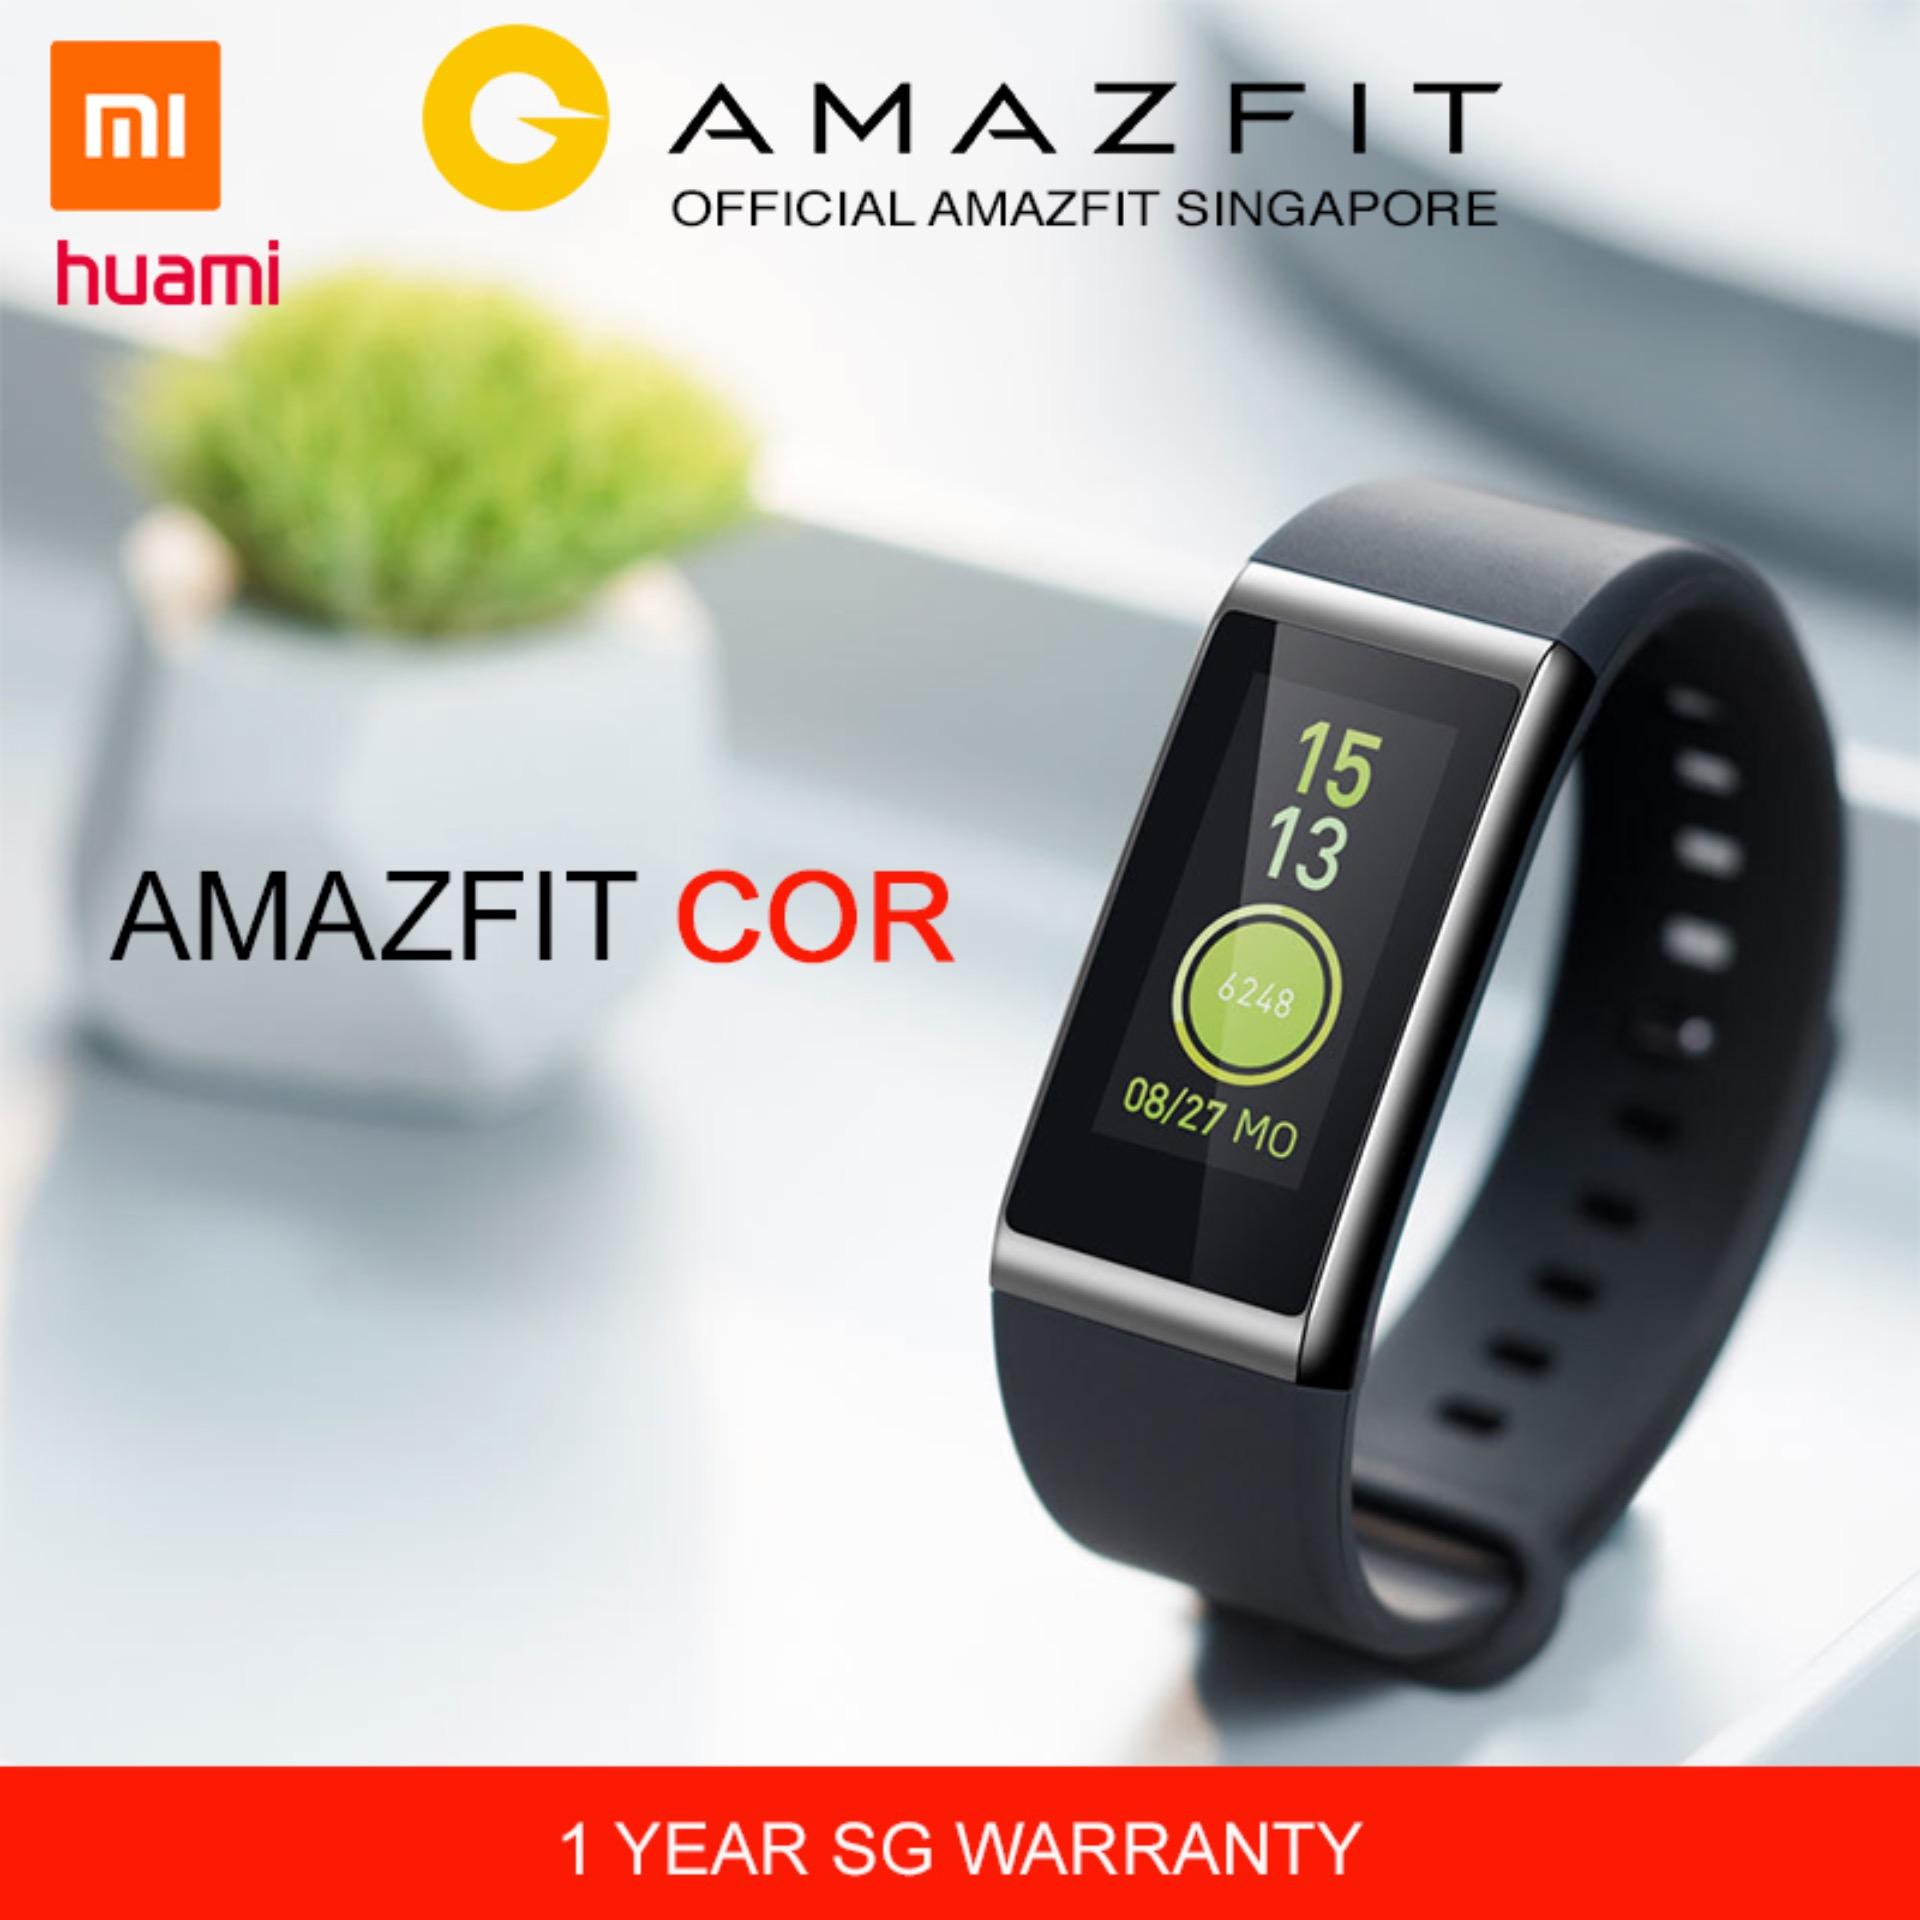 Who Sells Amazfit Cor Waterproof Smart Band International Version The Cheapest